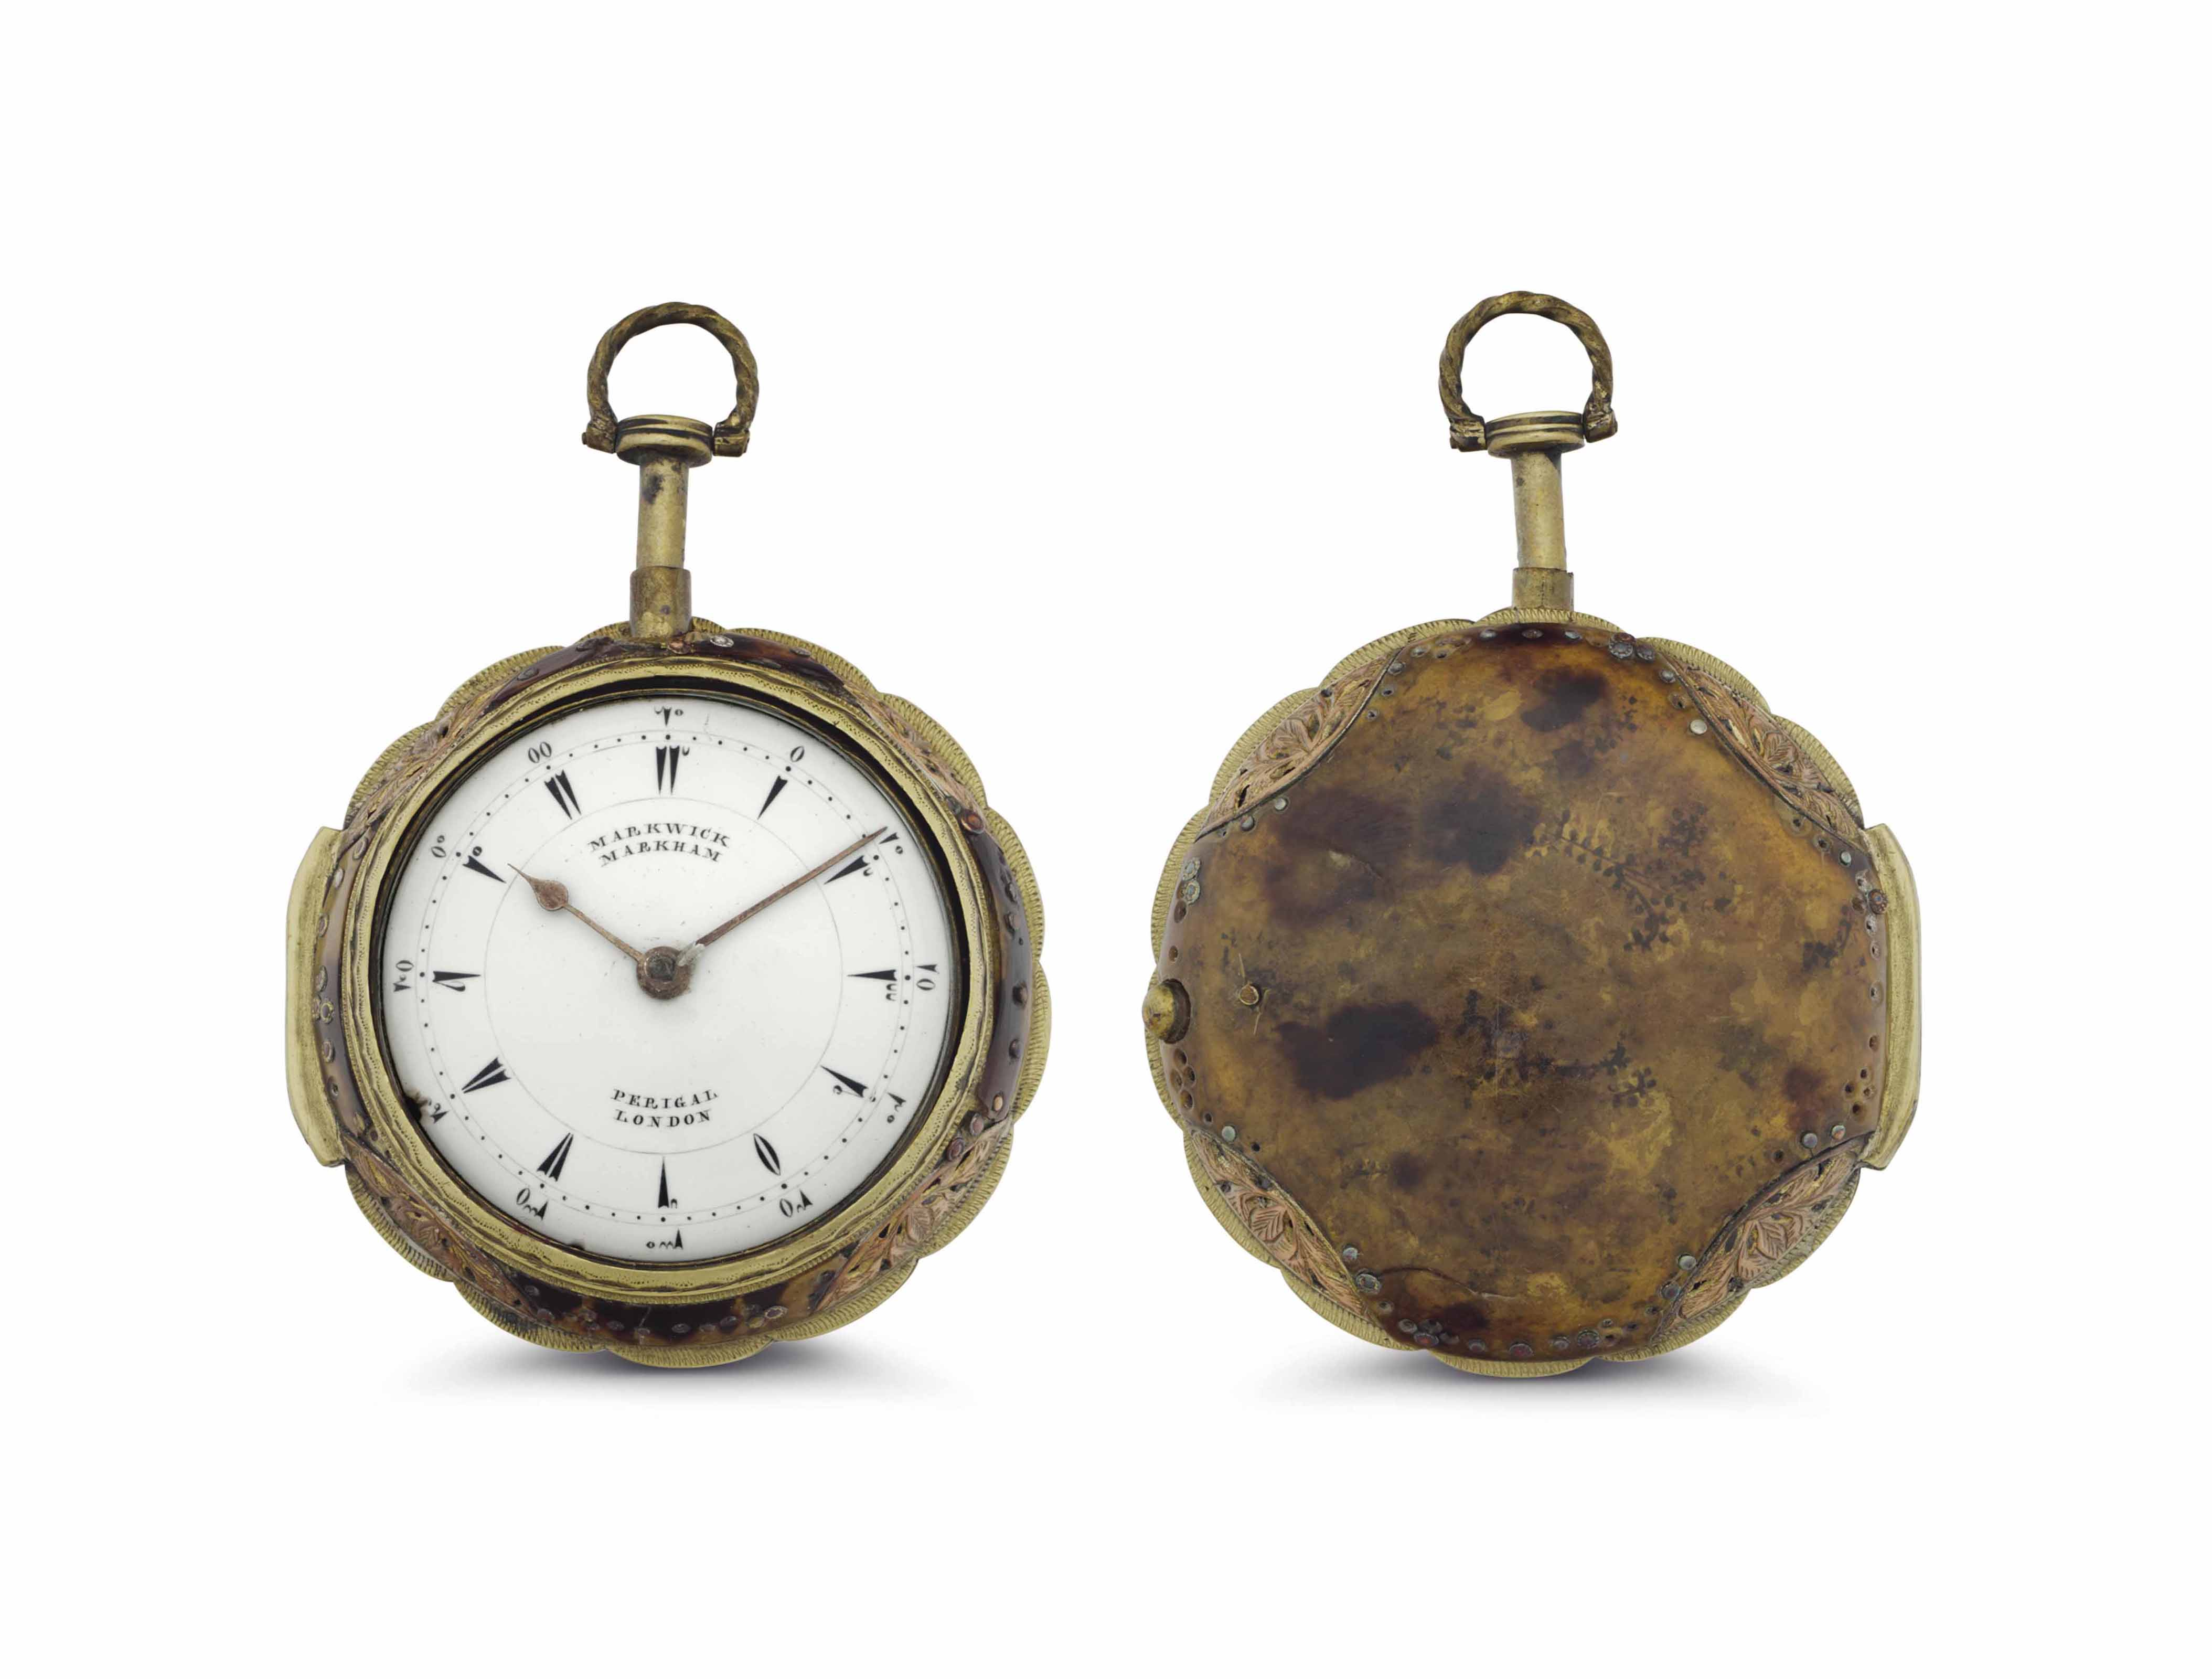 Markwick Markham, Perigal. A Gilt and Tortoiseshell Quarter Repeating Pair Case Keywound Verge Pocket Watch, Made for the Turkish Market